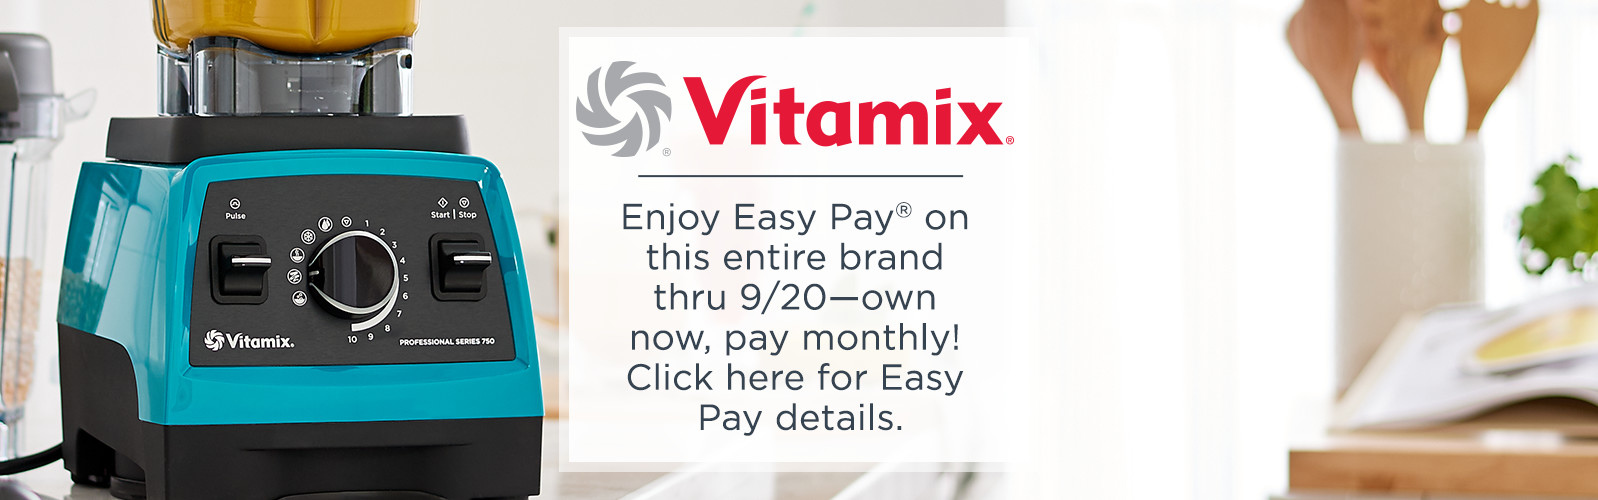 Vitamix.  Enjoy Easy Pay® on this entire brand thru 9/20—own now, pay monthly!  Click here for Easy Pay details.